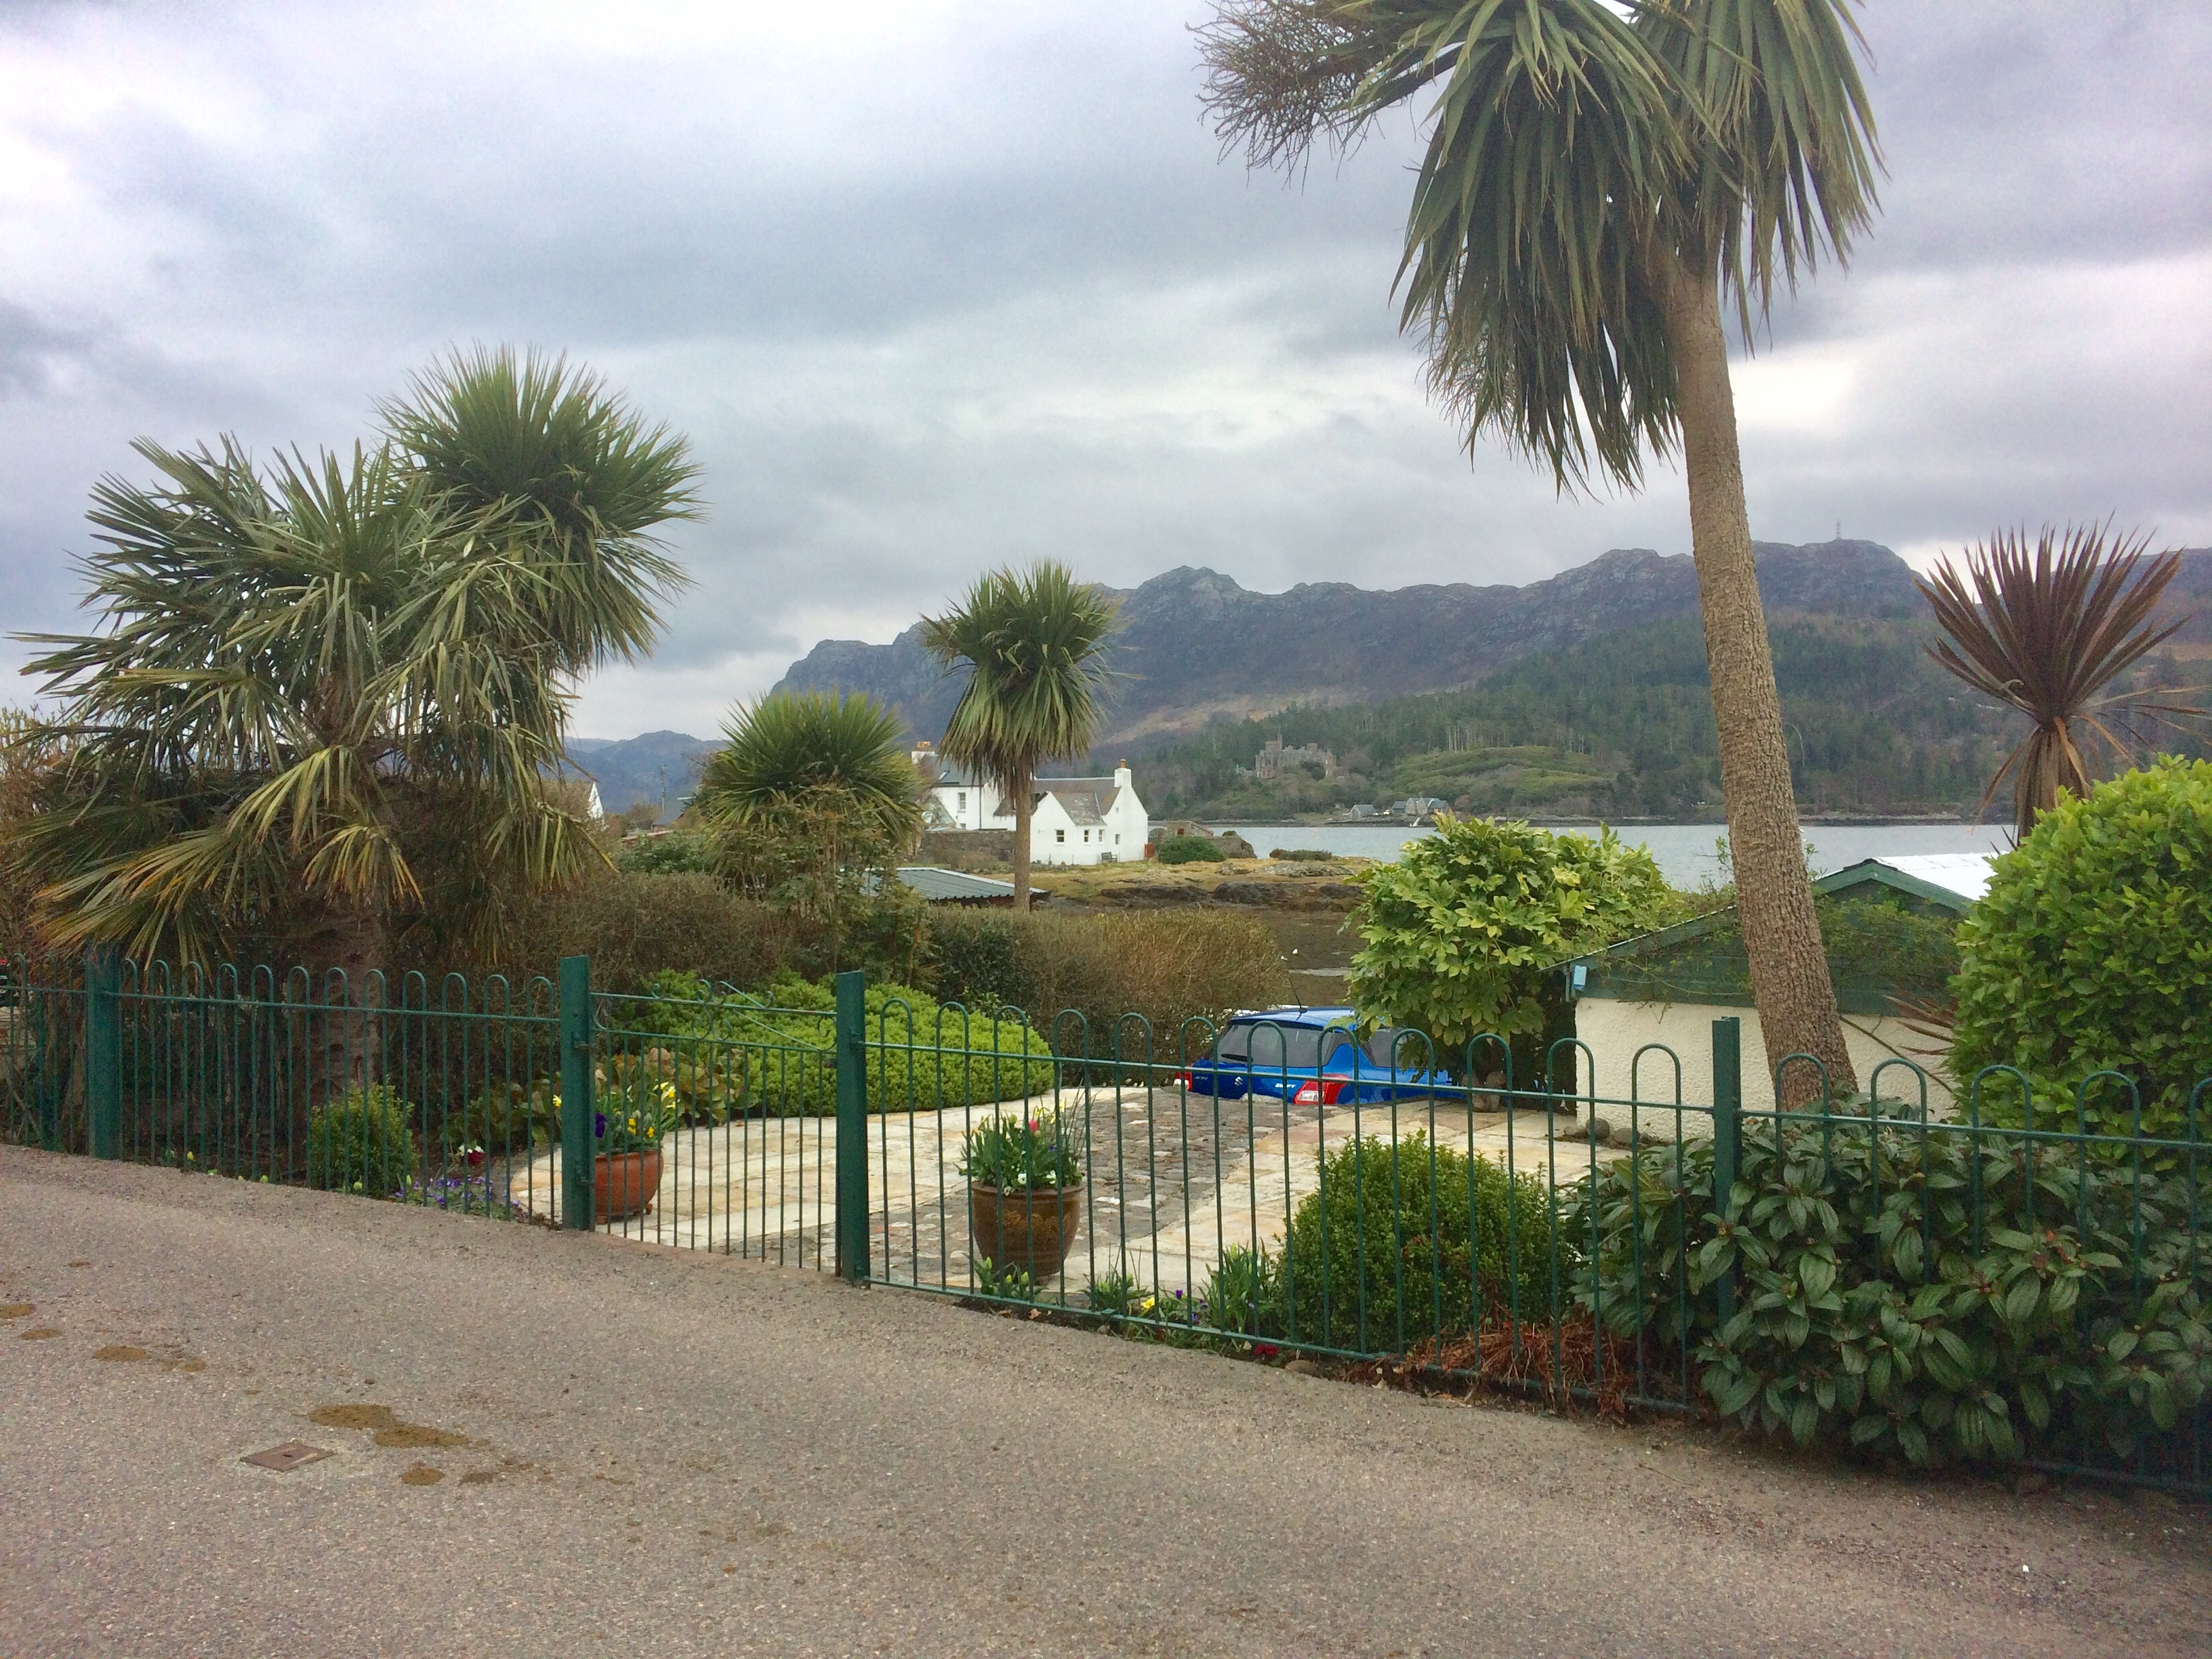 Plockton with palm trees